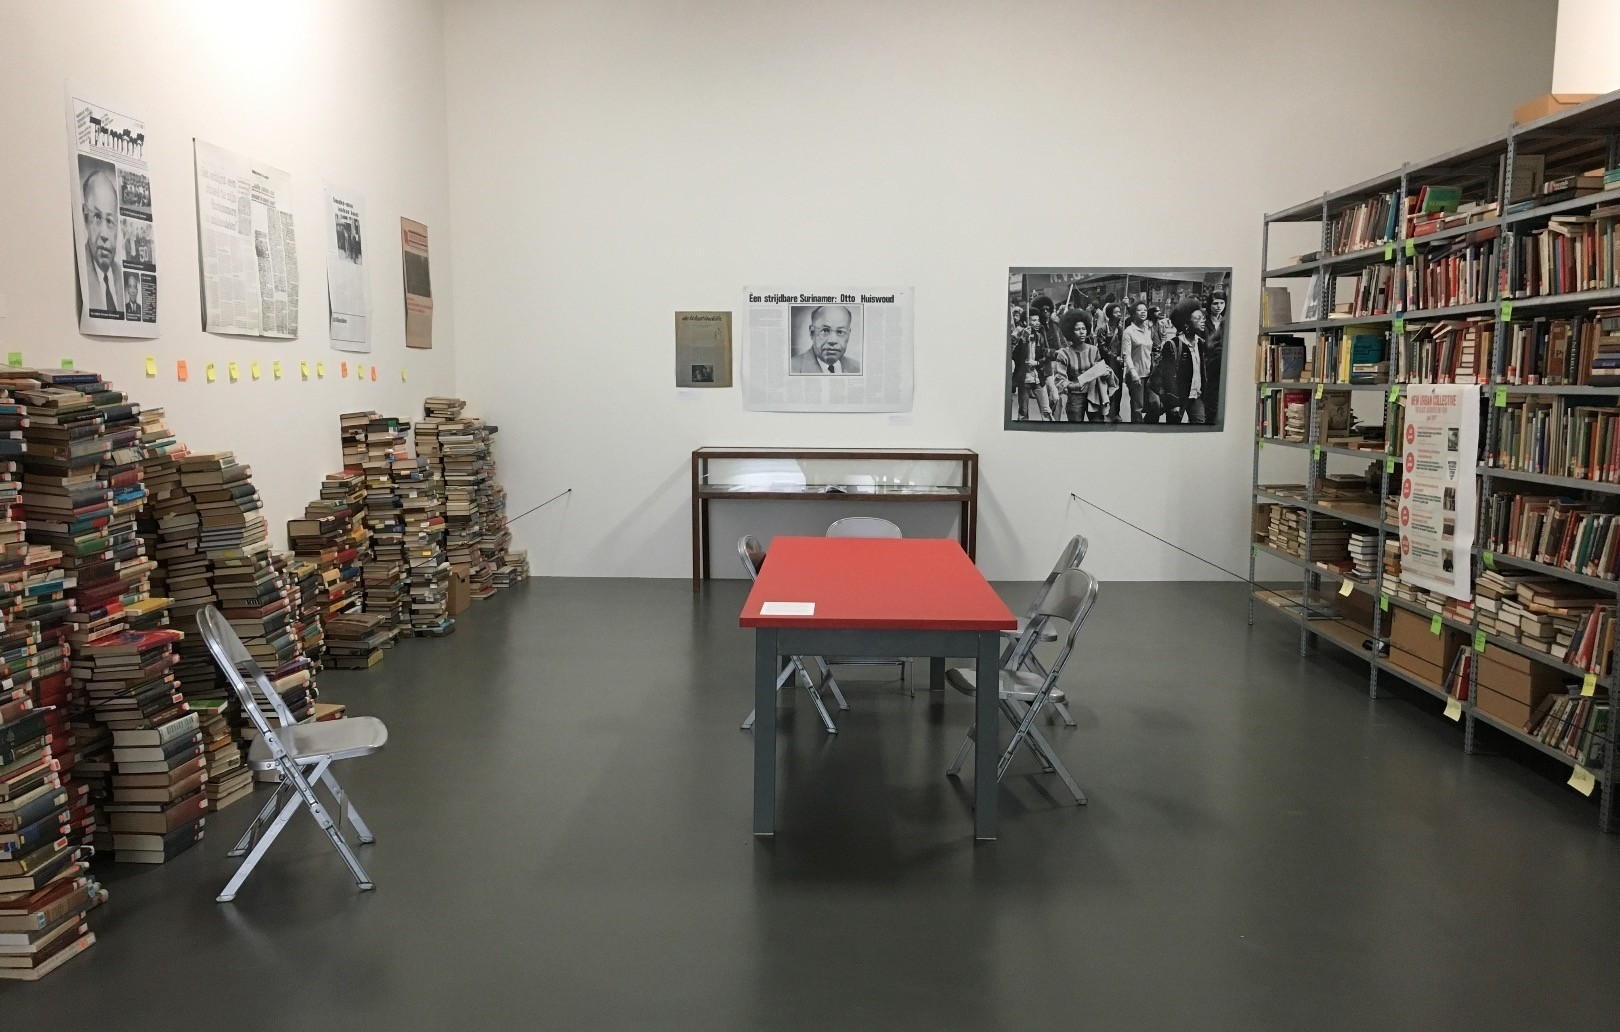 ,Black archives, is a room full of books and several publications that are part of the u201cCinema Olanda: Platform.u201d The Black Archive produces an alternative, independent history from the perspective of the black community in the country.